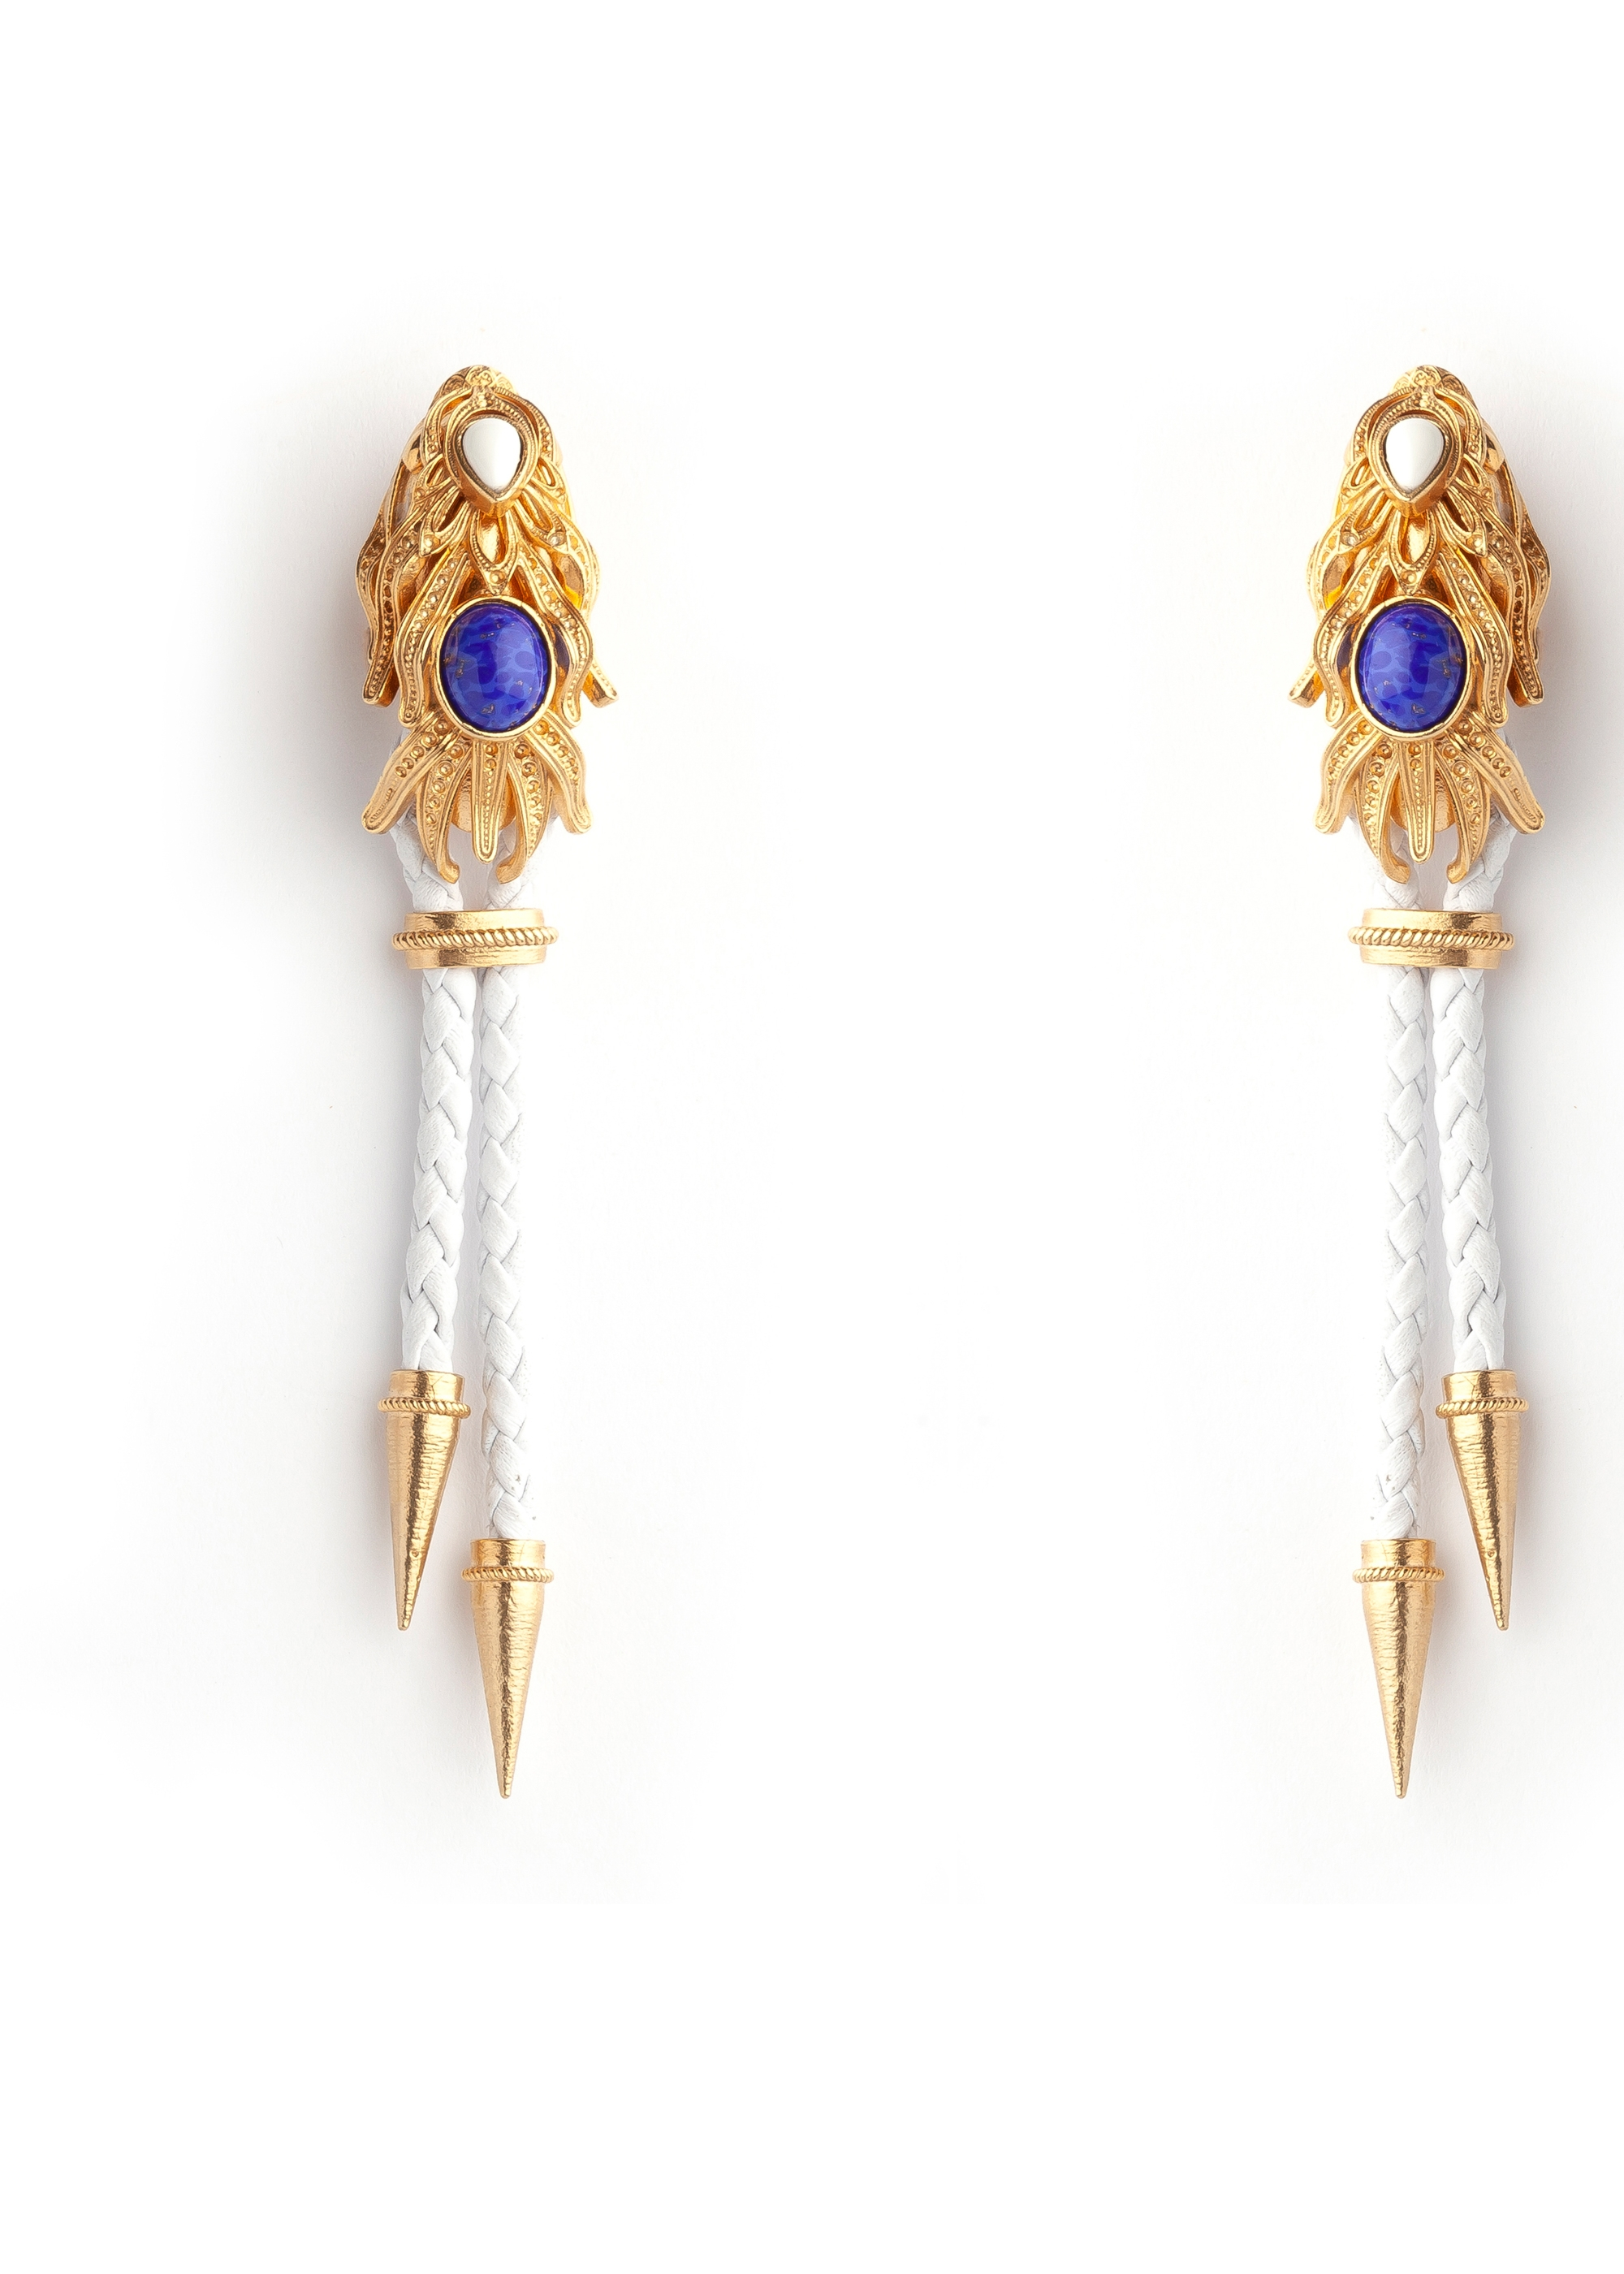 White Gold Dragonfish Luxury Earrings by Sonia Petroff on curated-crowd.com